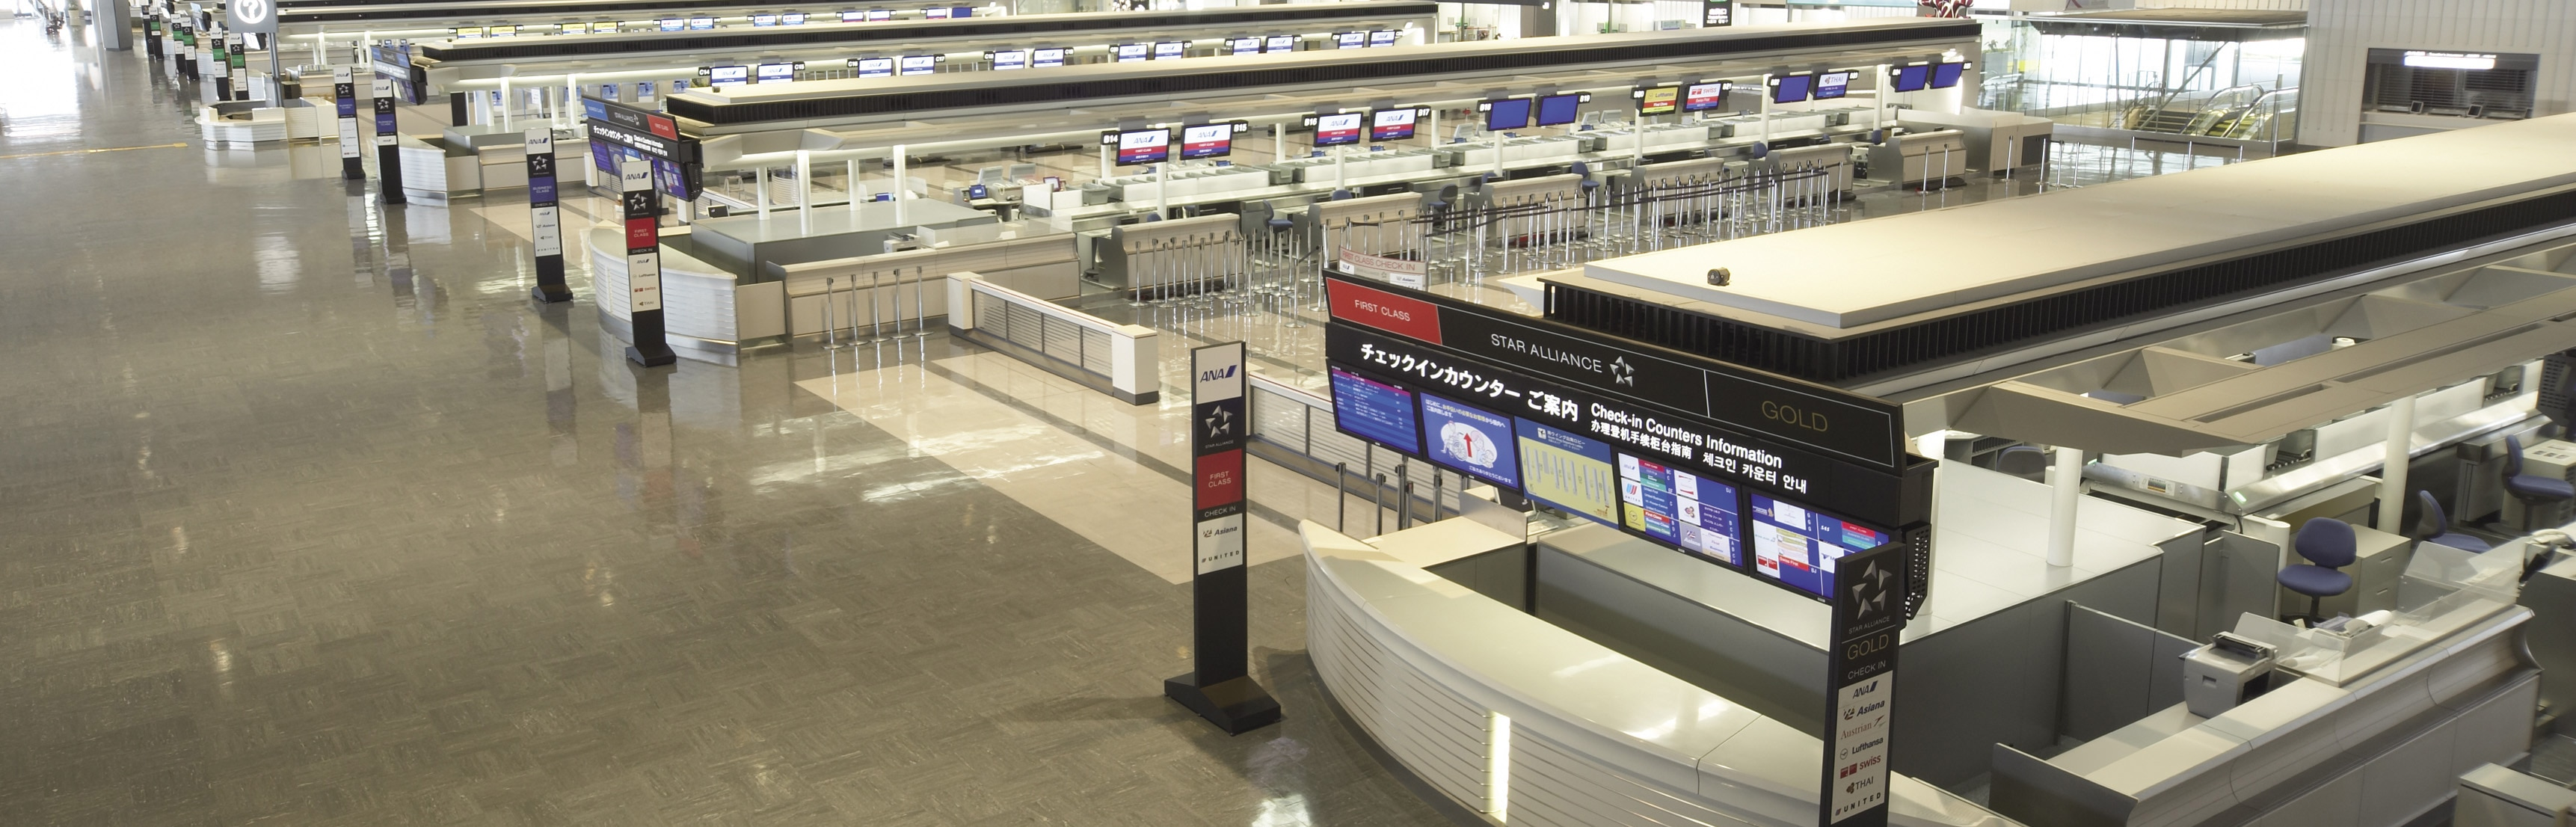 Check-in Counters Information